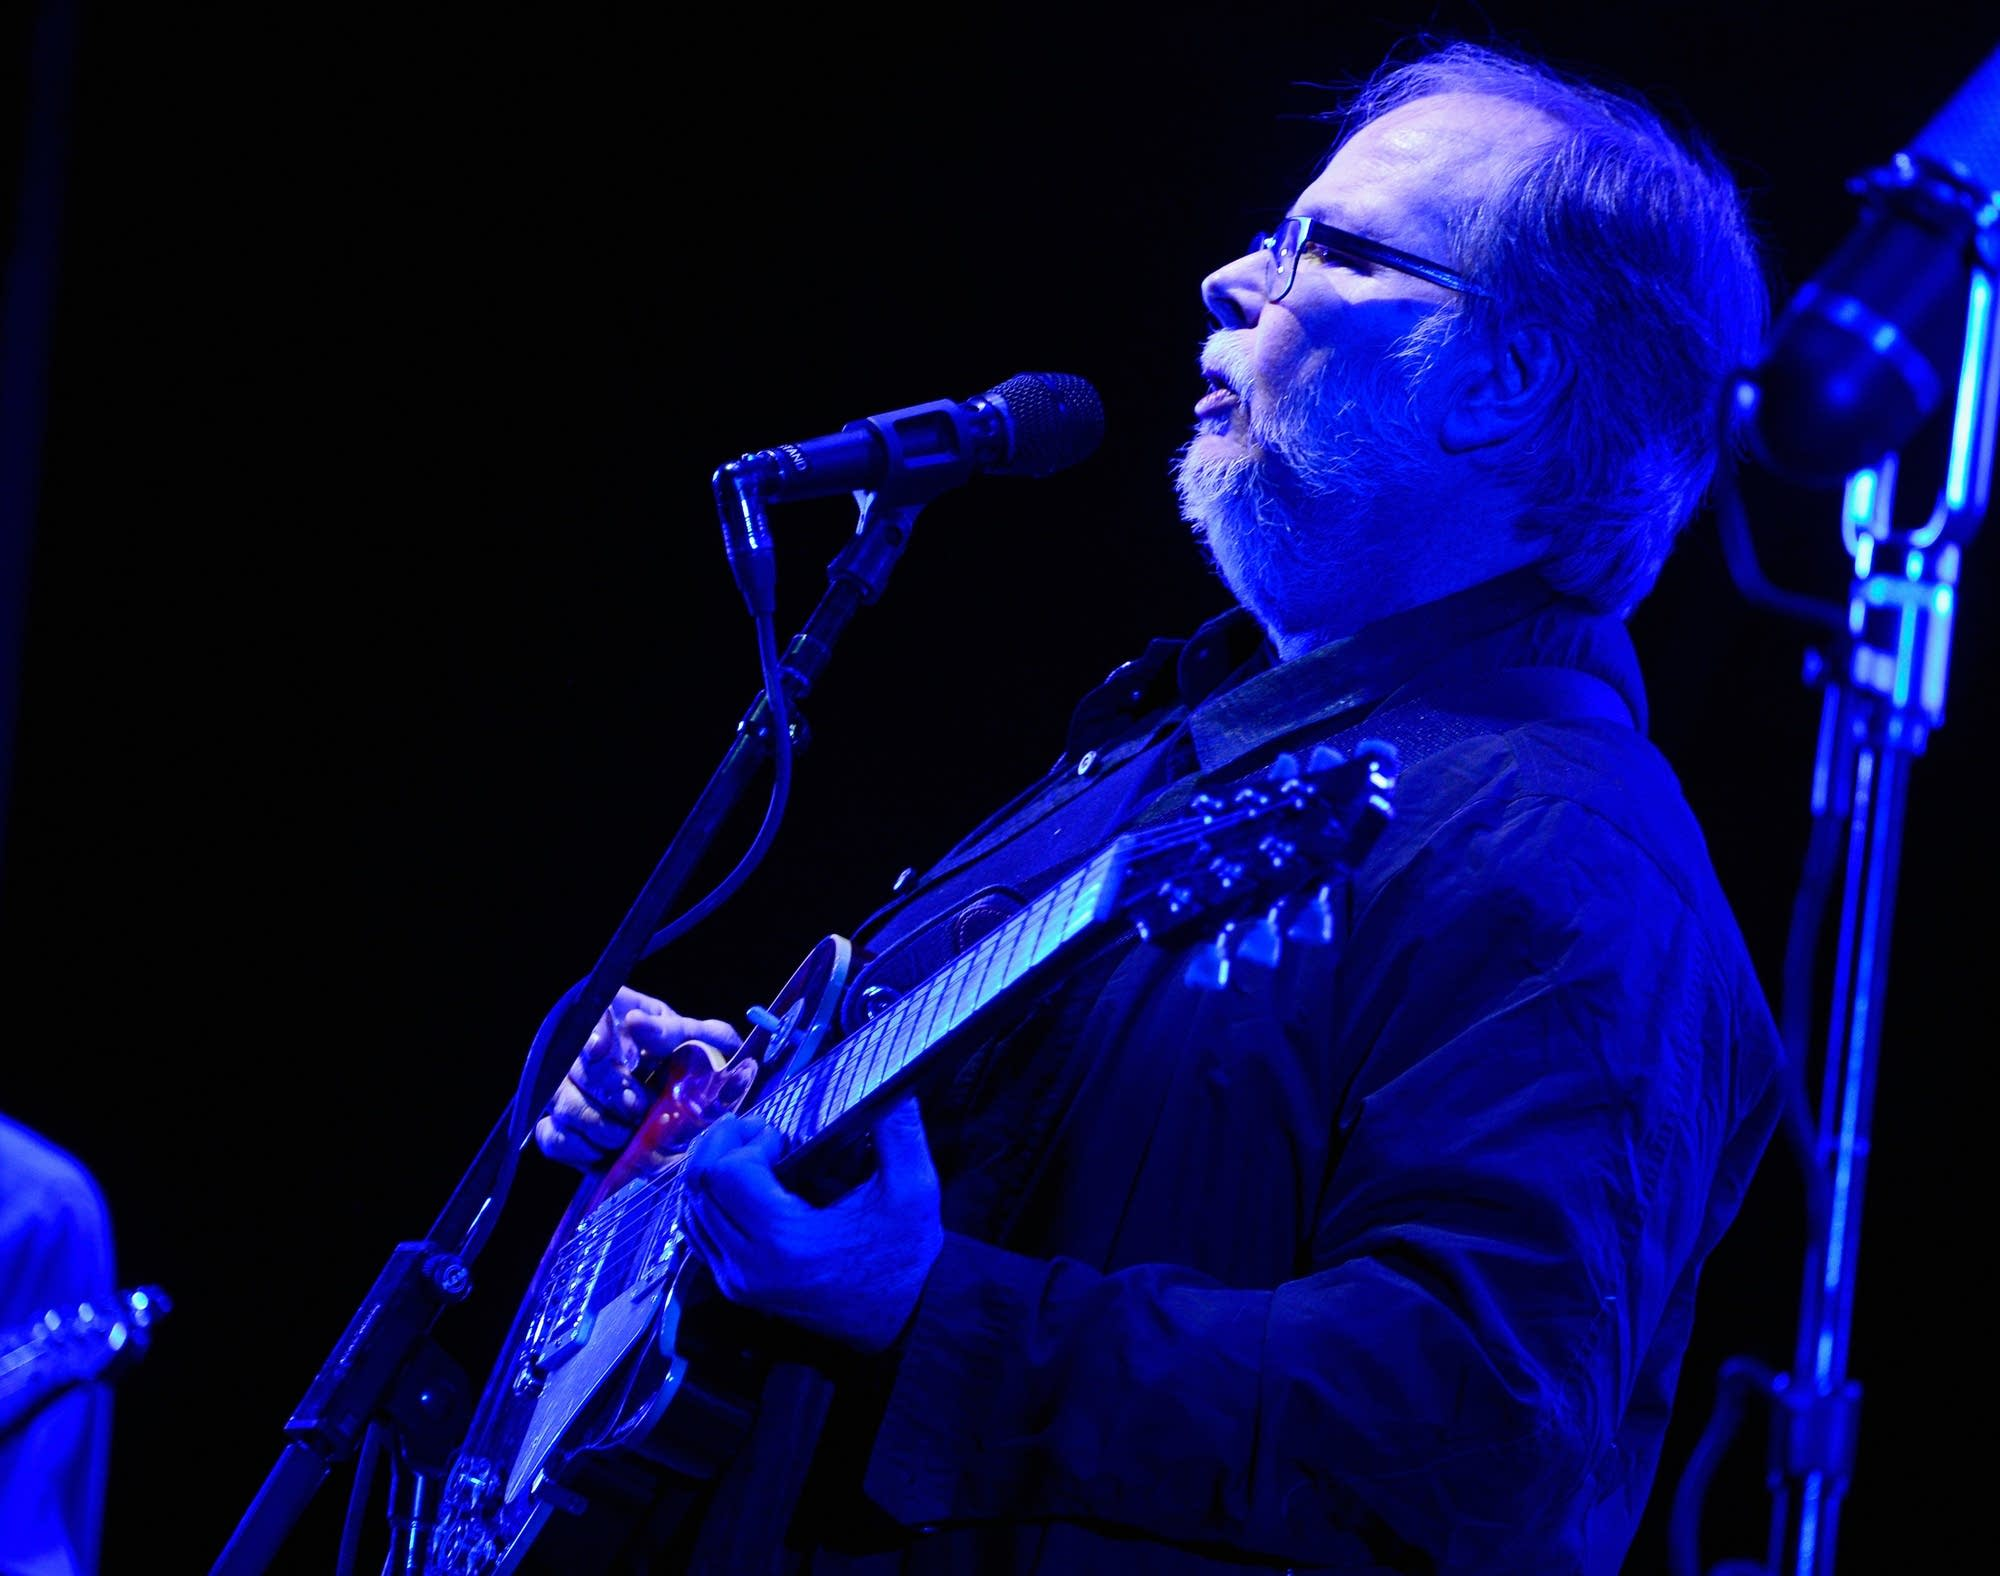 Walter Becker performs with Steely Dan at Coachella in 2015.